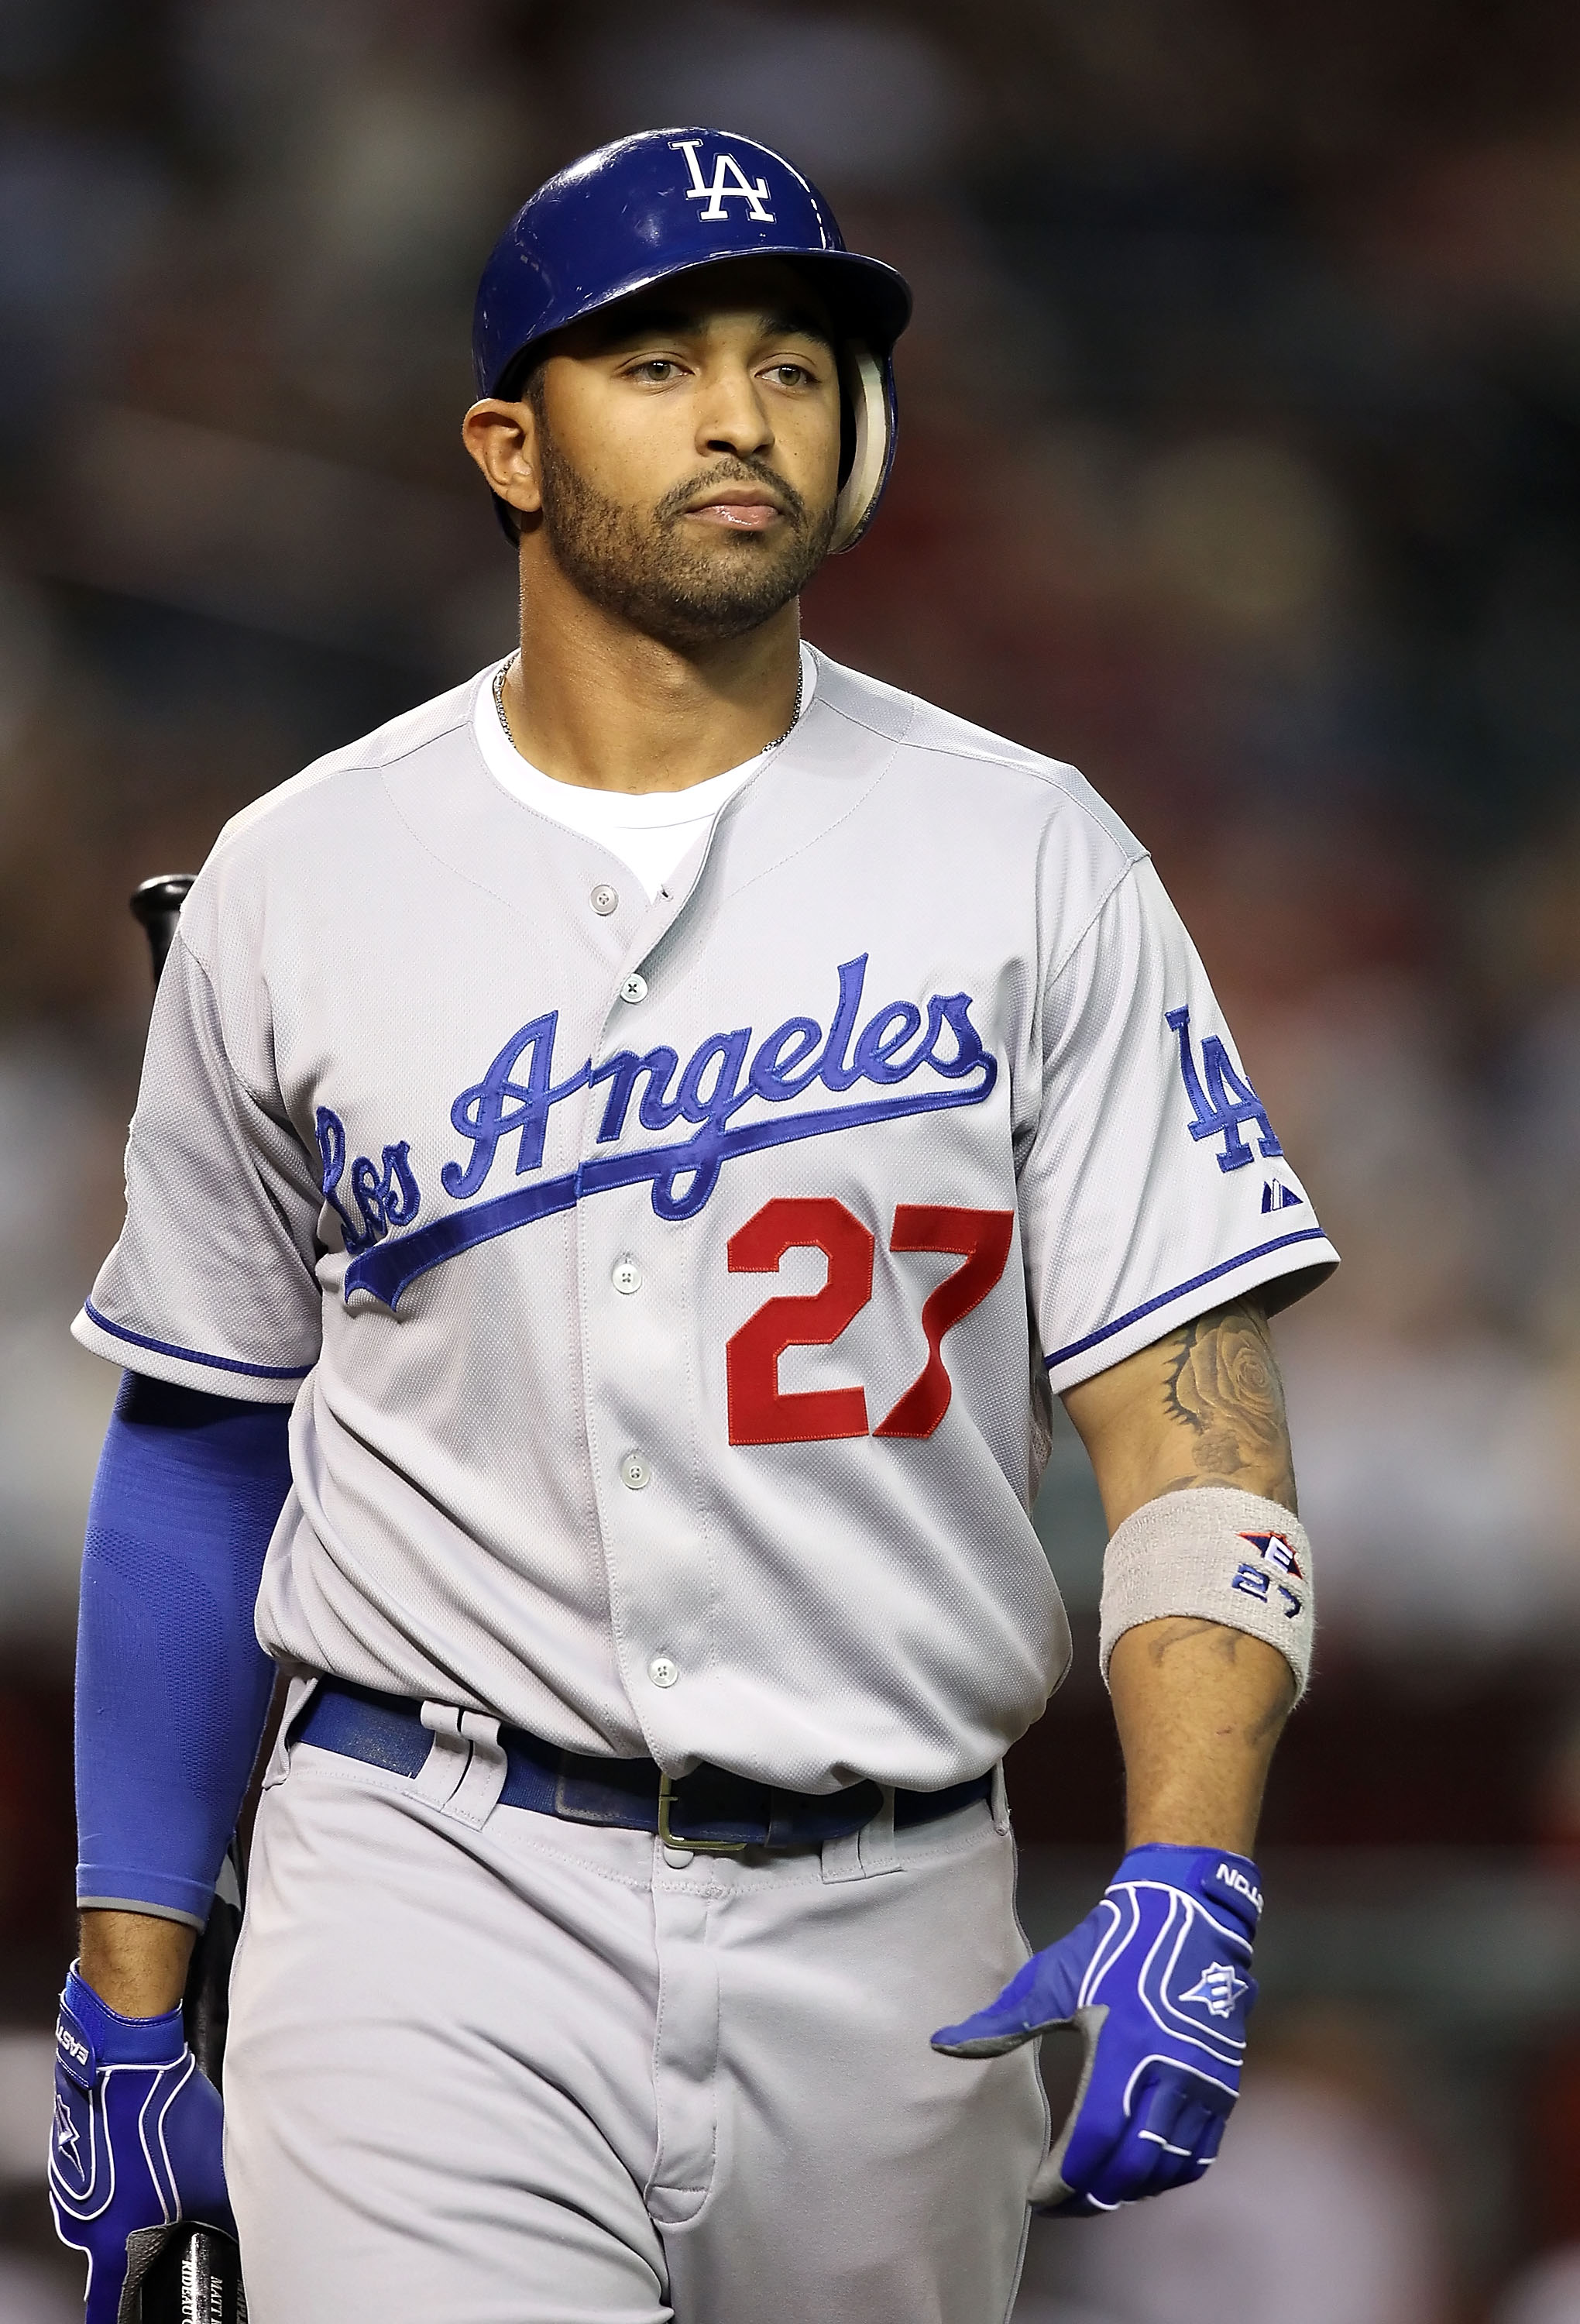 PHOENIX - SEPTEMBER 24:  Matt Kemp #27 of the Los Angeles Dodgers strikes out against the Arizona Diamondbacks during the Major League Baseball game at Chase Field on September 24, 2010 in Phoenix, Arizona.  (Photo by Christian Petersen/Getty Images)